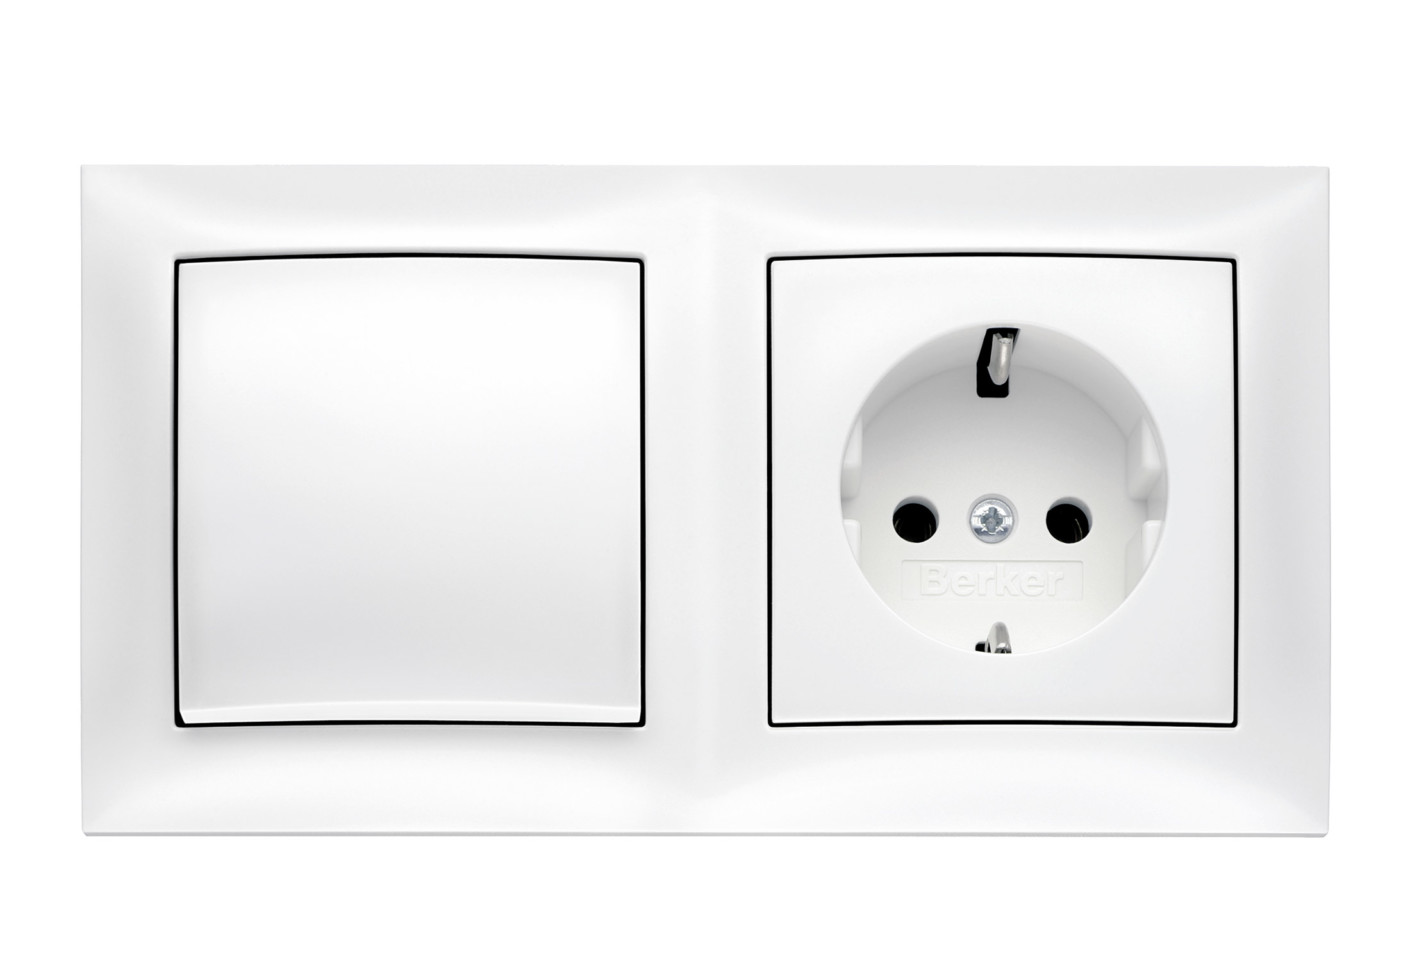 Neu S.1 switch-socket-combination by Berker | STYLEPARK LR28